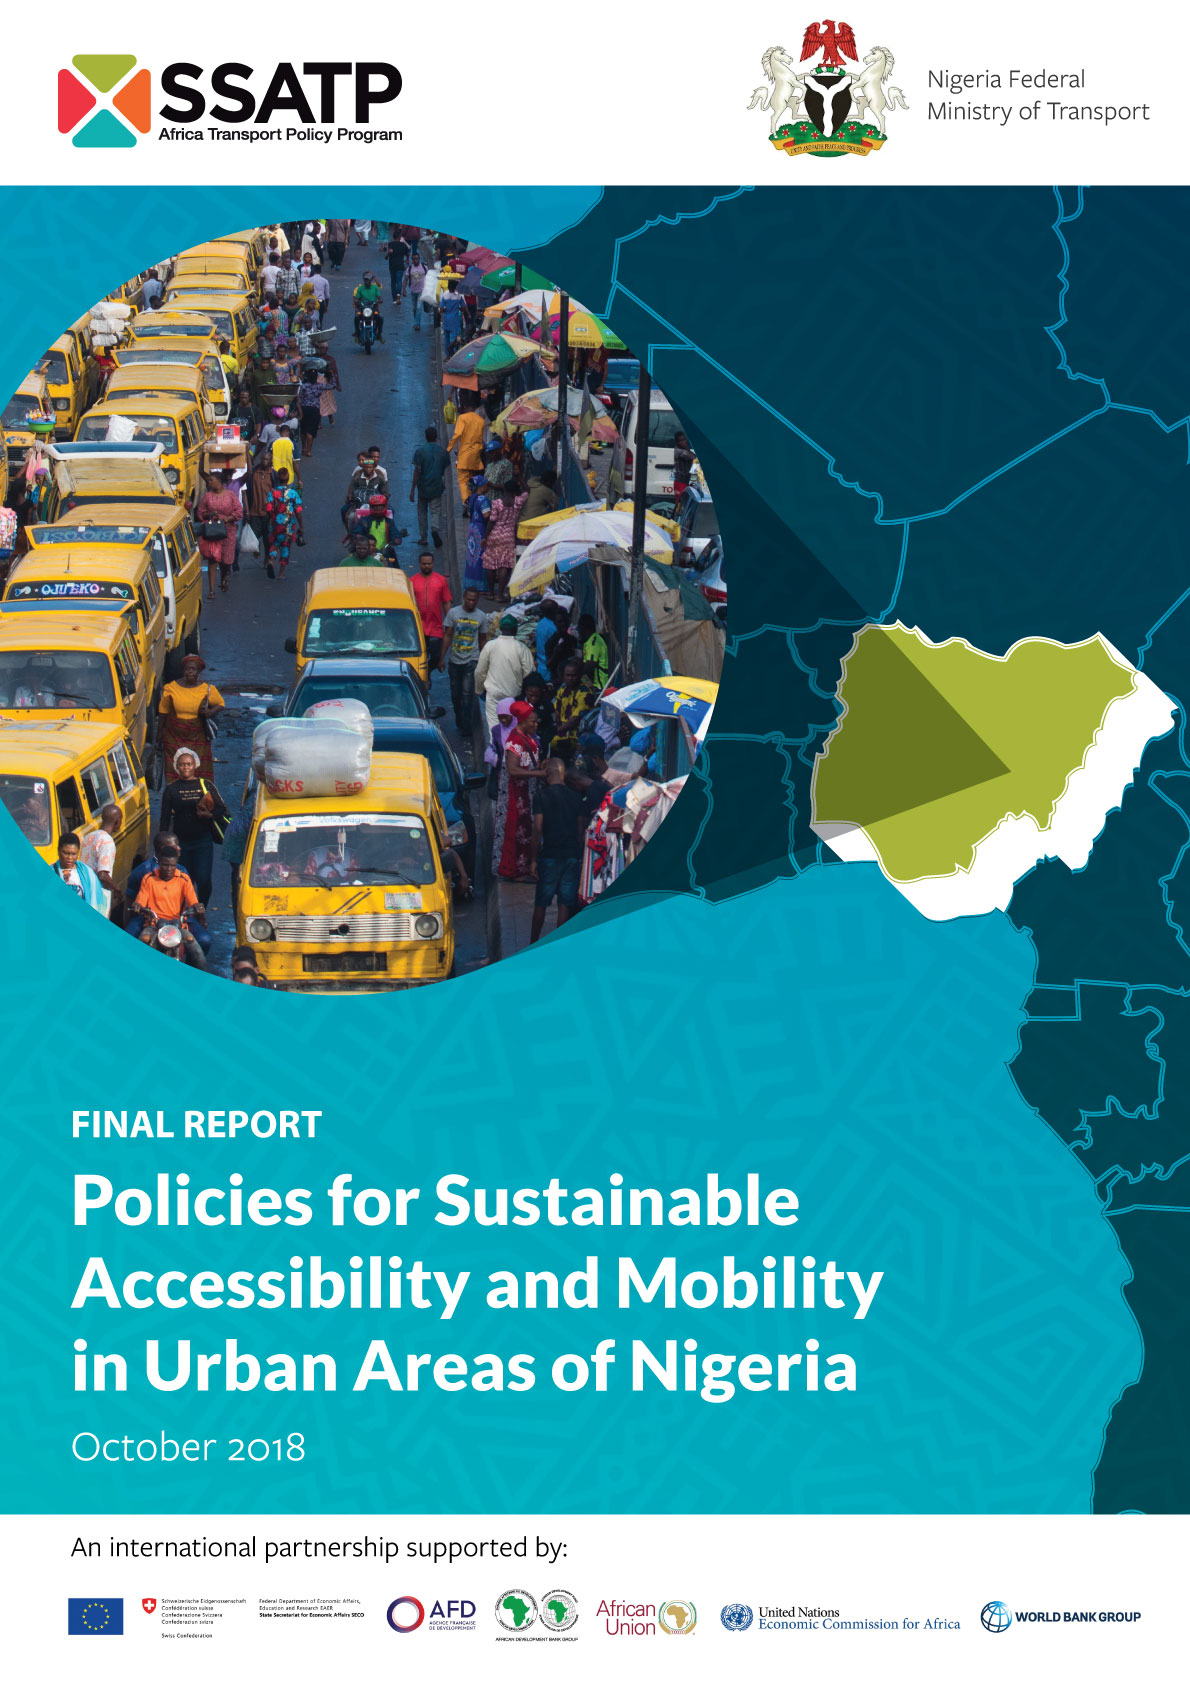 Policies for Sustainable Accessibility and Mobility in Urban Areas of Nigeria - Diagnostic Study